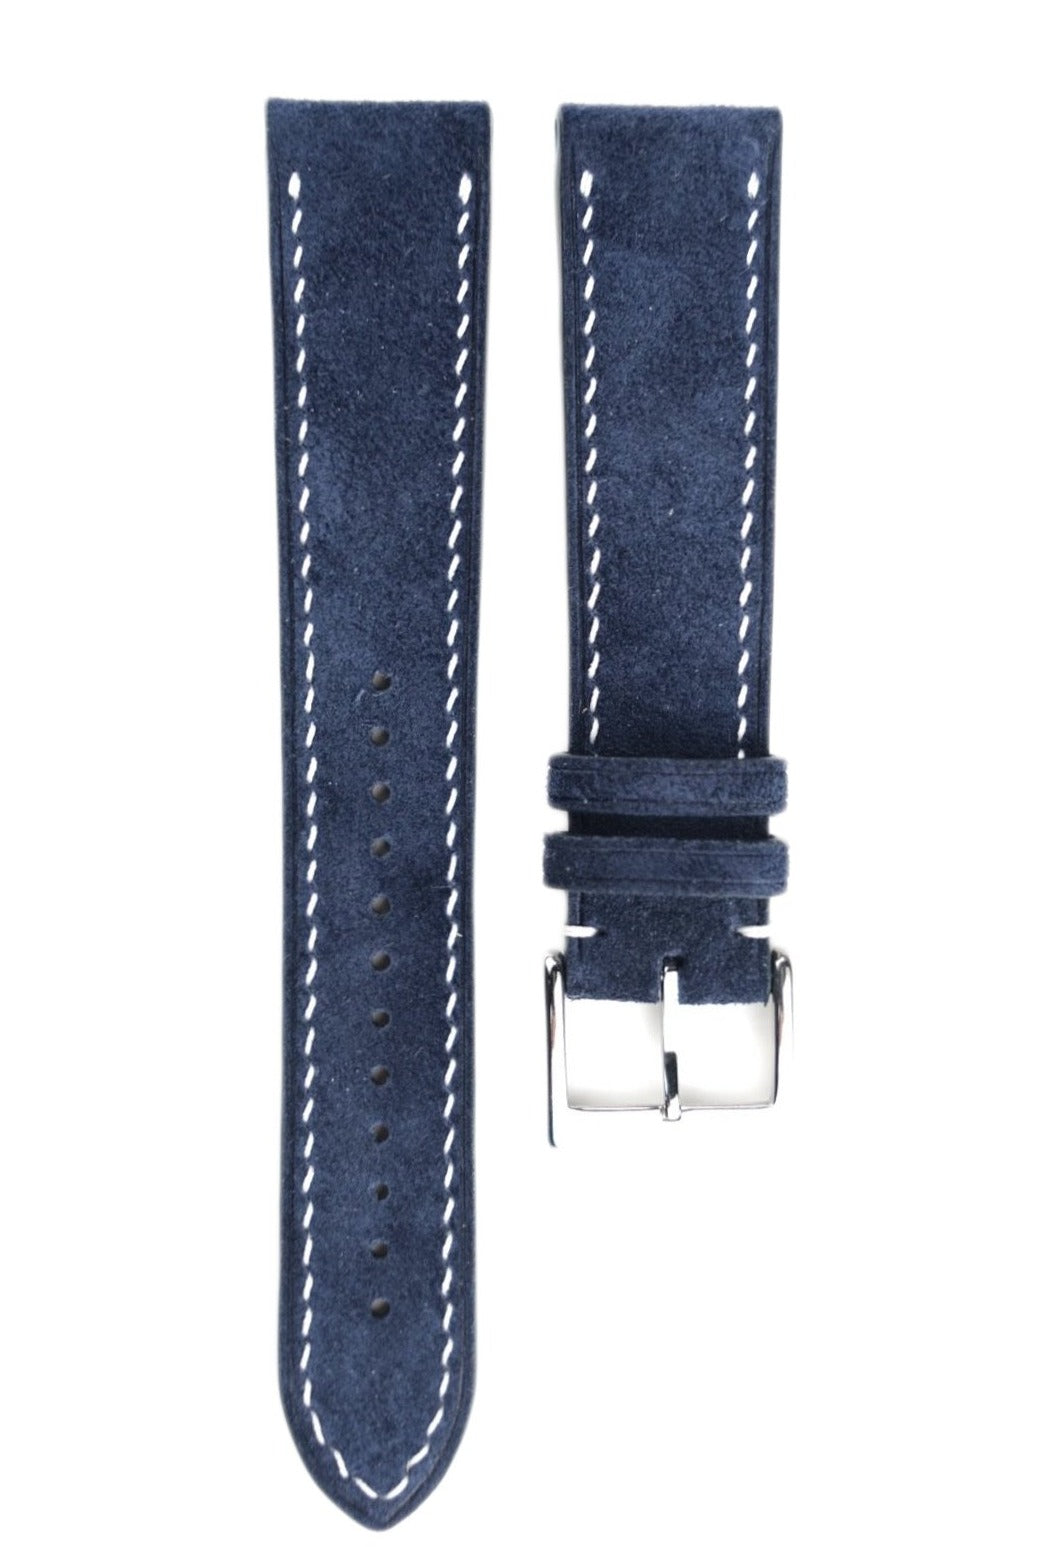 Suede Leather Strap in Navy - Artisan Straps